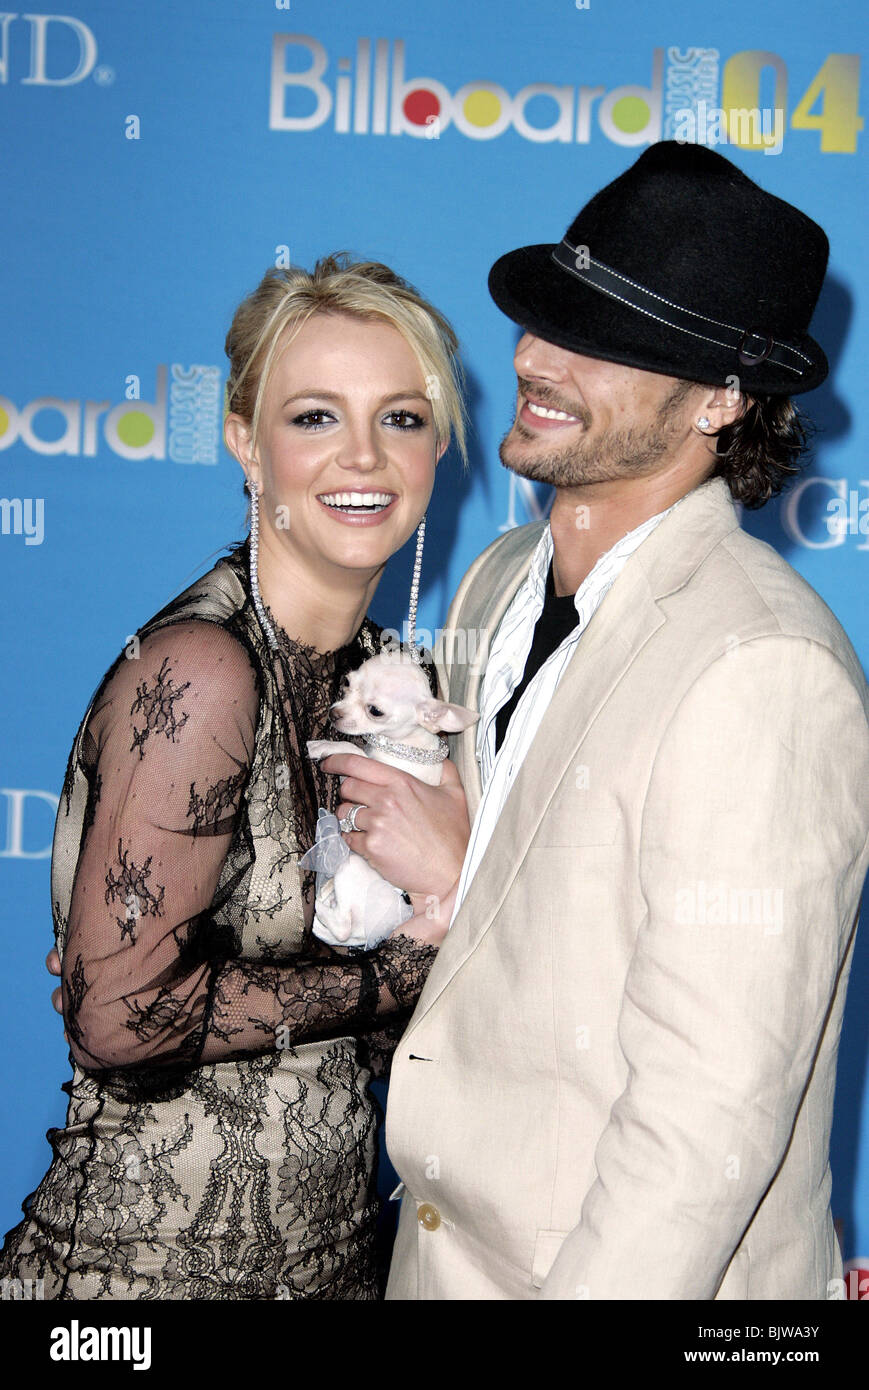 BRITNEY SPEARS KEVIN FEDERLINE   DOG 2004 BILLBOARD MUSIC AWARDS MGM GRAND  GARDEN ARENA MGM GRAND HOTEL LAS VEGAS US 08 Decem cde8001790c